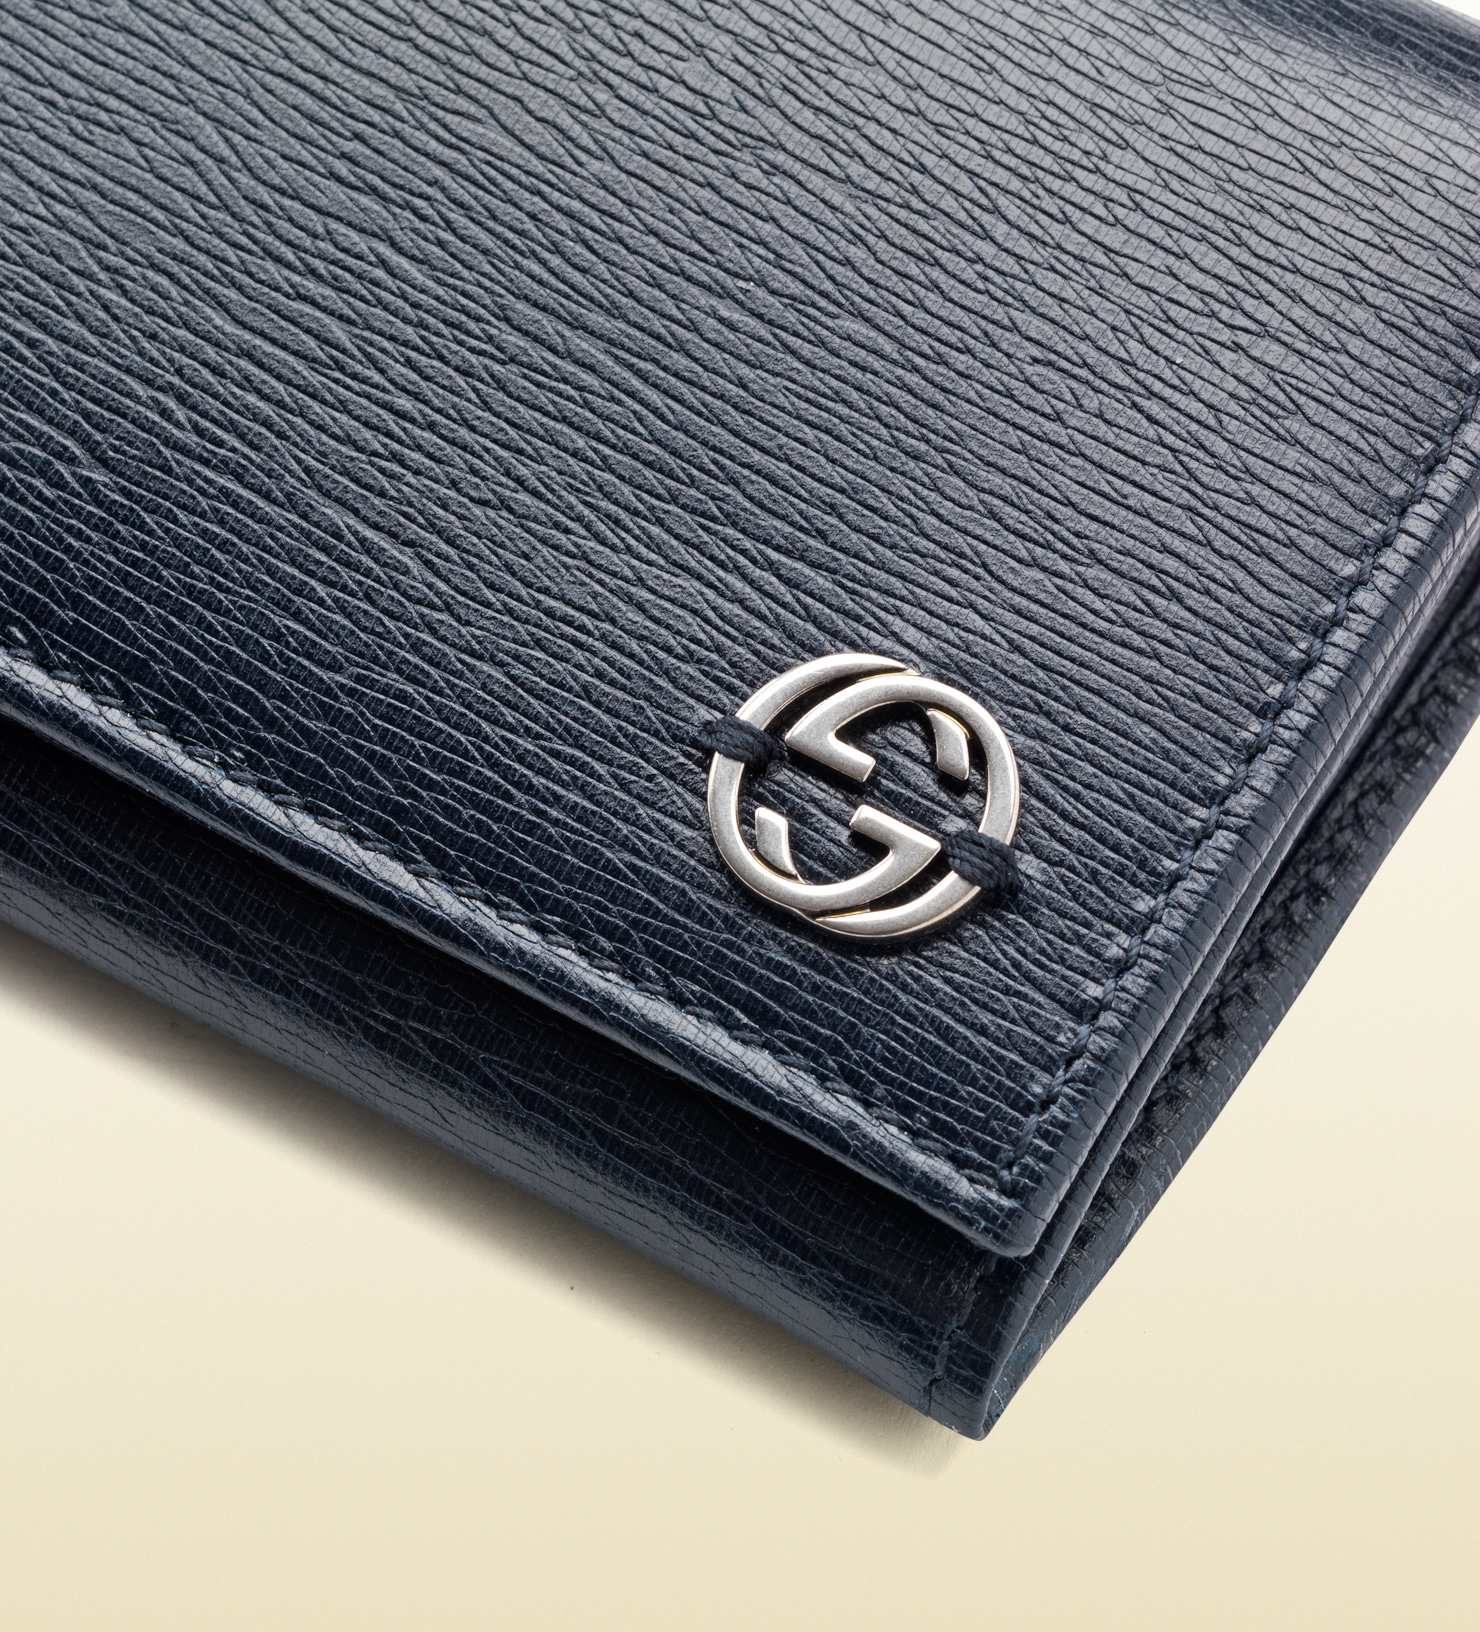 Lyst - Gucci Leather Continental Wallet in Blue for Men